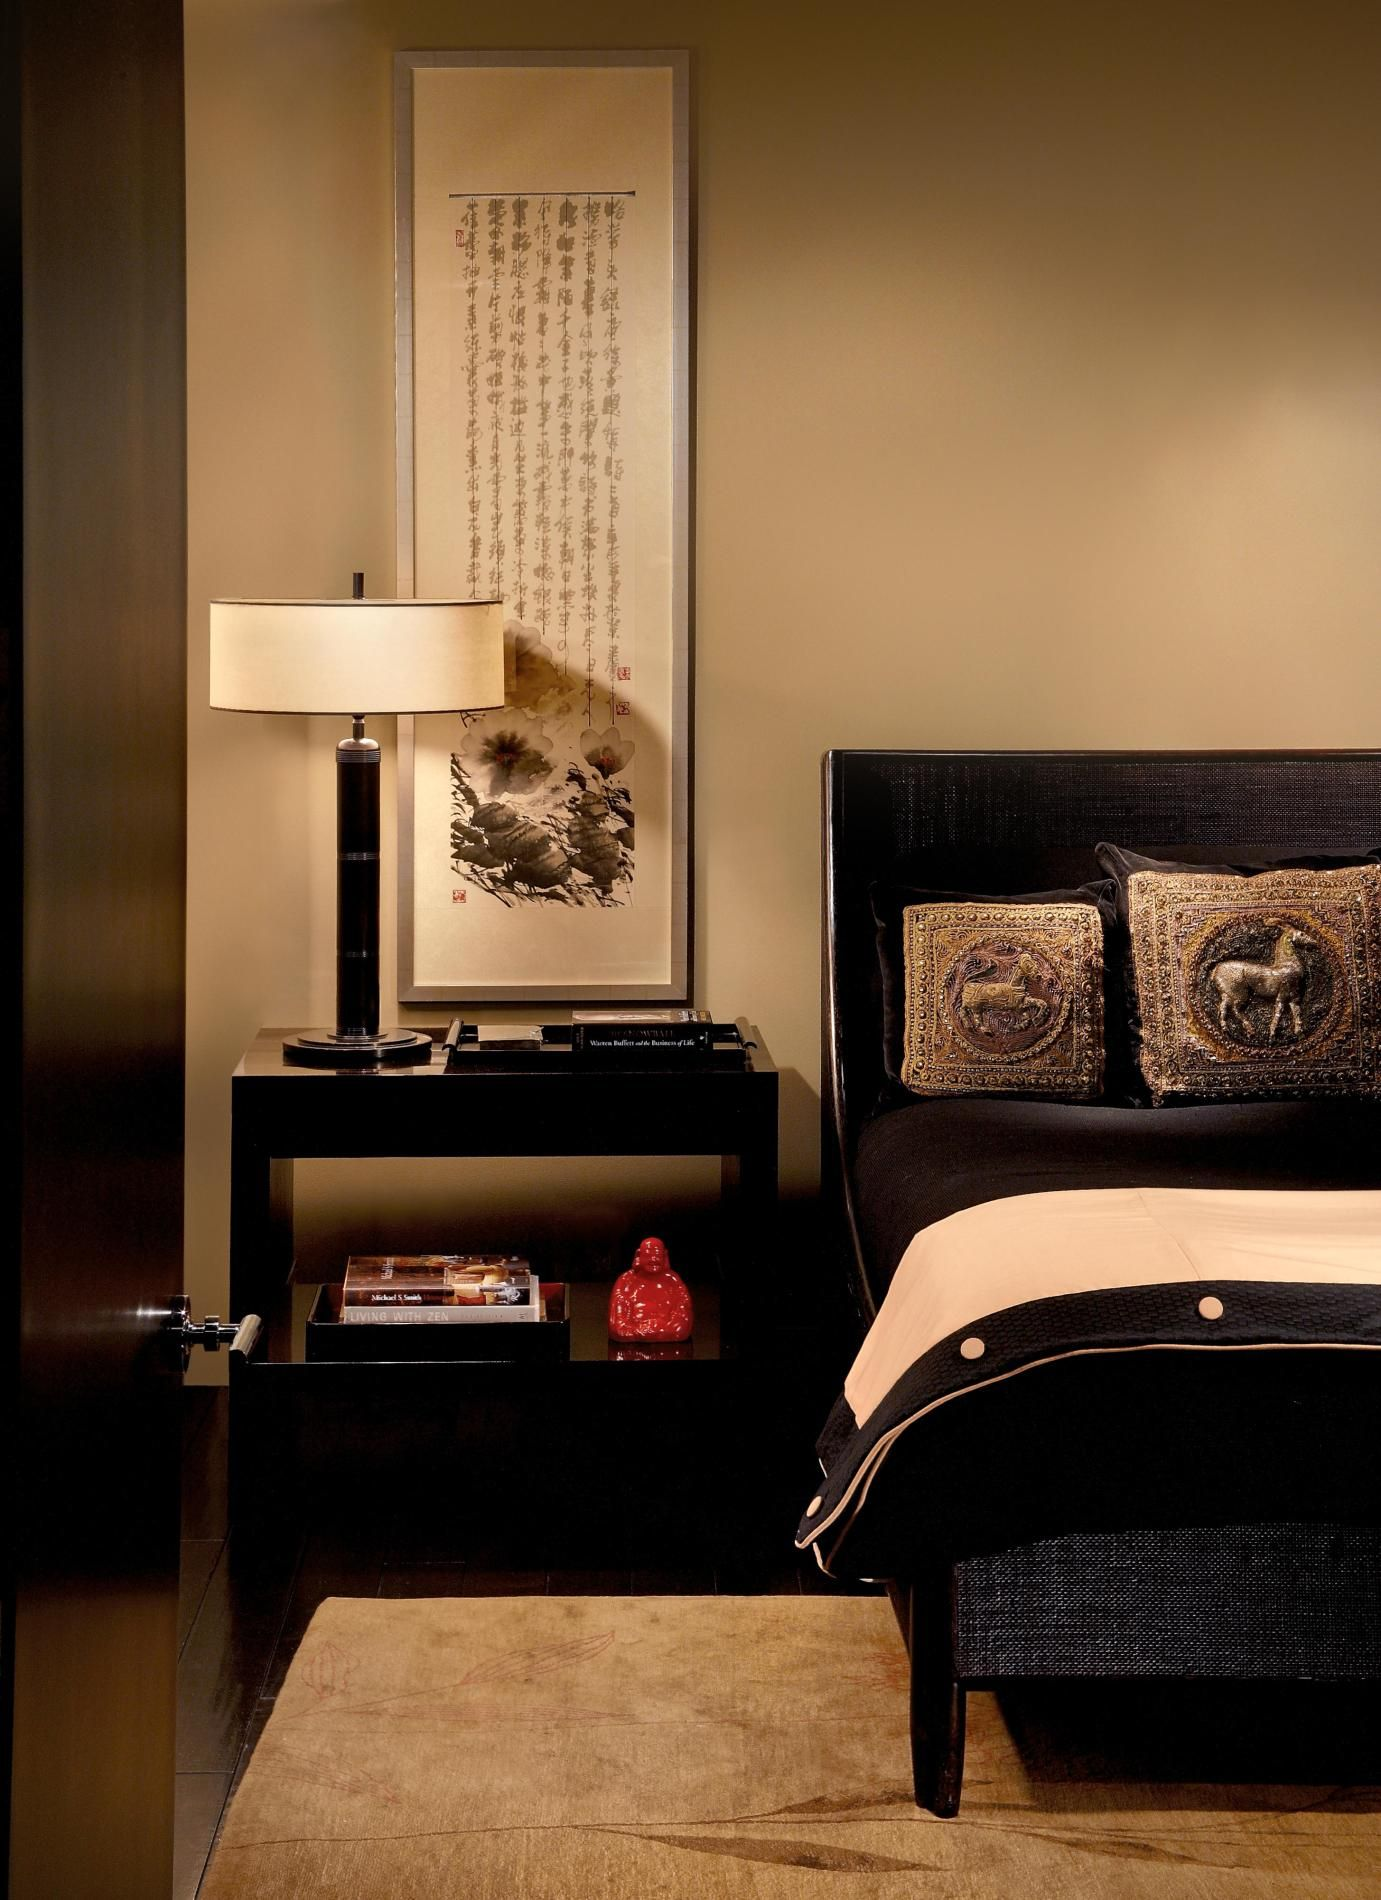 25 asian bedroom design ideas bedroom design asian. Black Bedroom Furniture Sets. Home Design Ideas